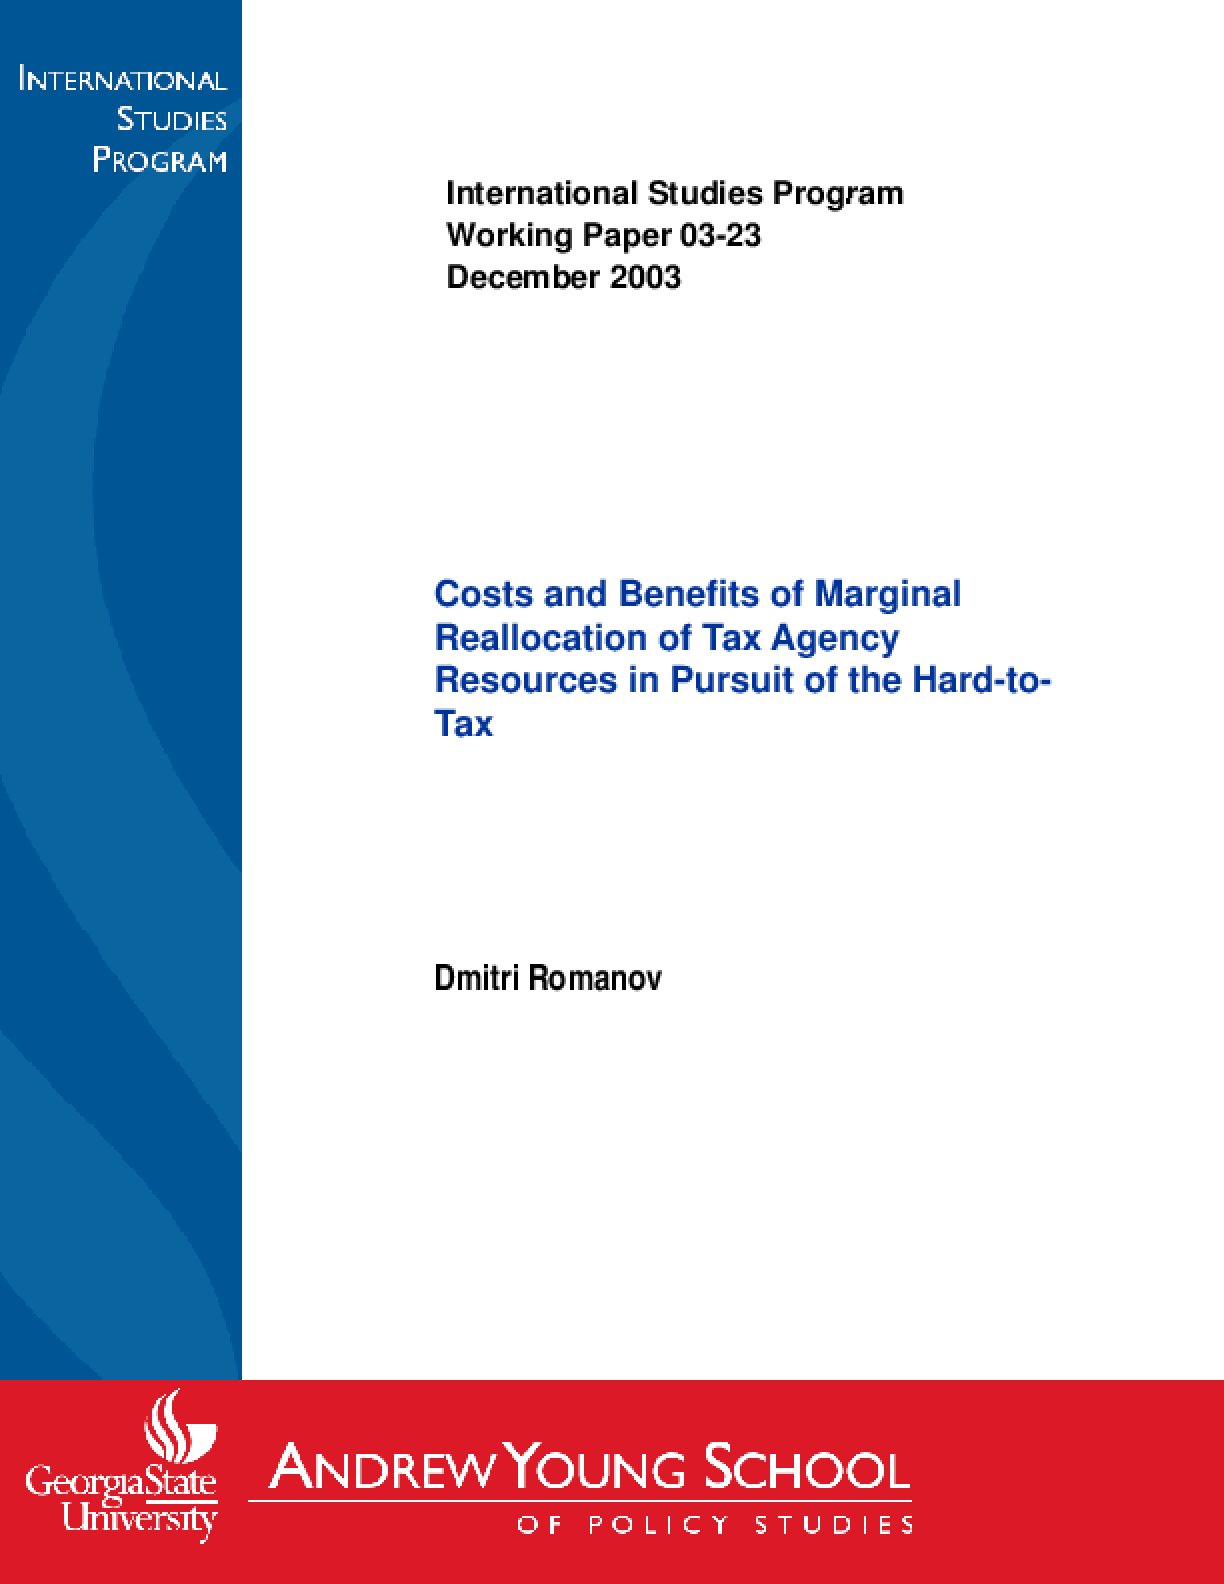 Costs and Benefits of Marginal Reallocation of Tax Agency Resources in Pursuit of the Hard-to-Tax